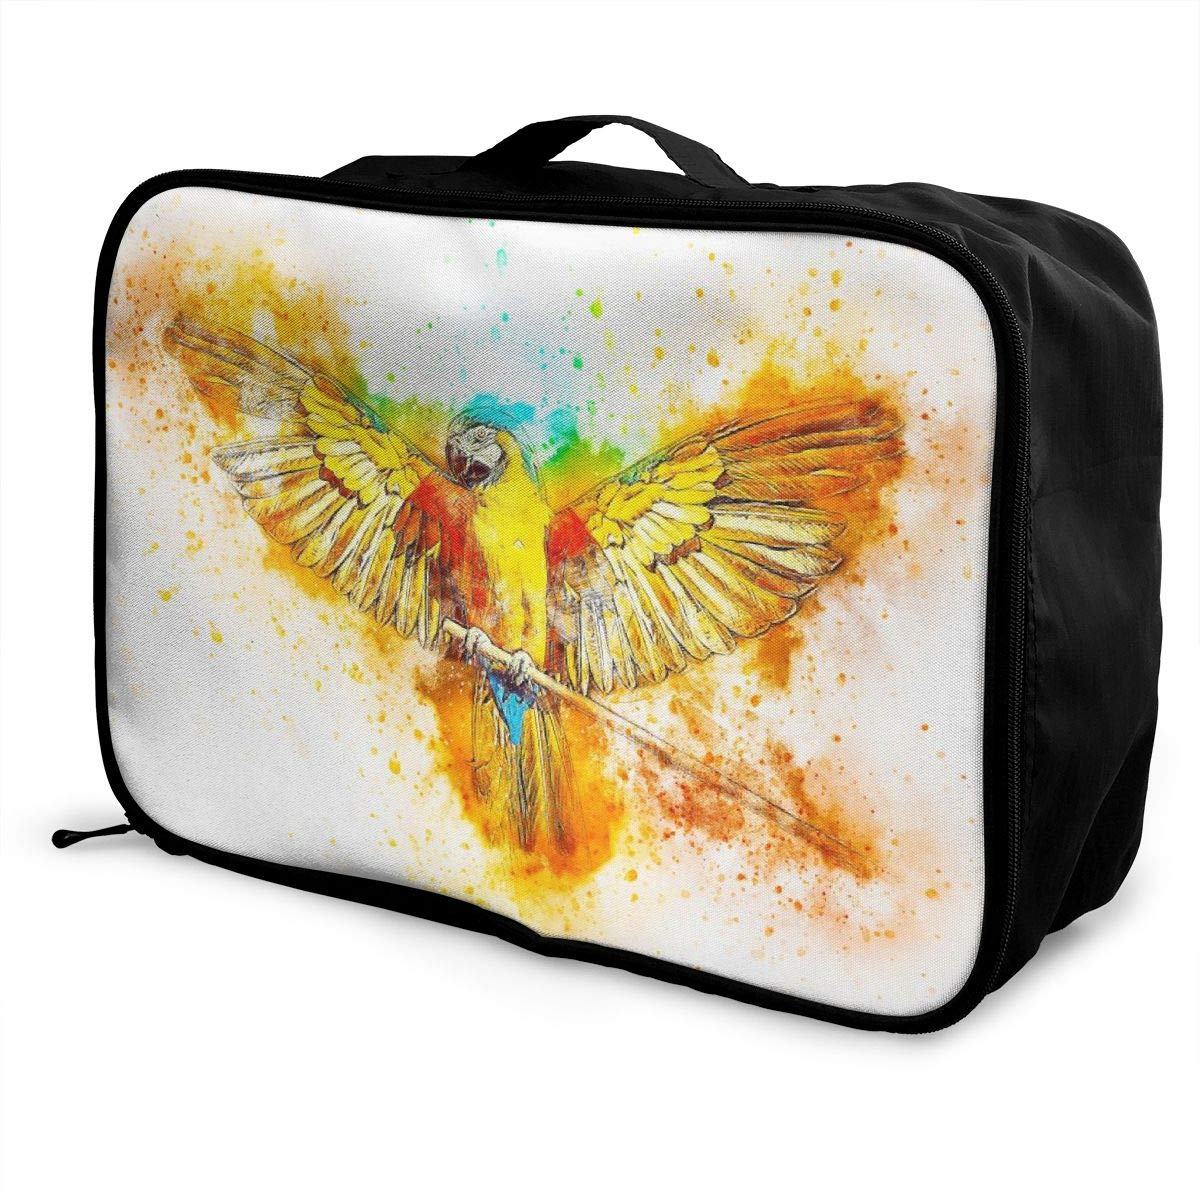 Parrot Wings Feathers Watercolor Travel Lightweight Waterproof Foldable Storage Carry Luggage Large Capacity Portable Luggage Bag Duffel Bag